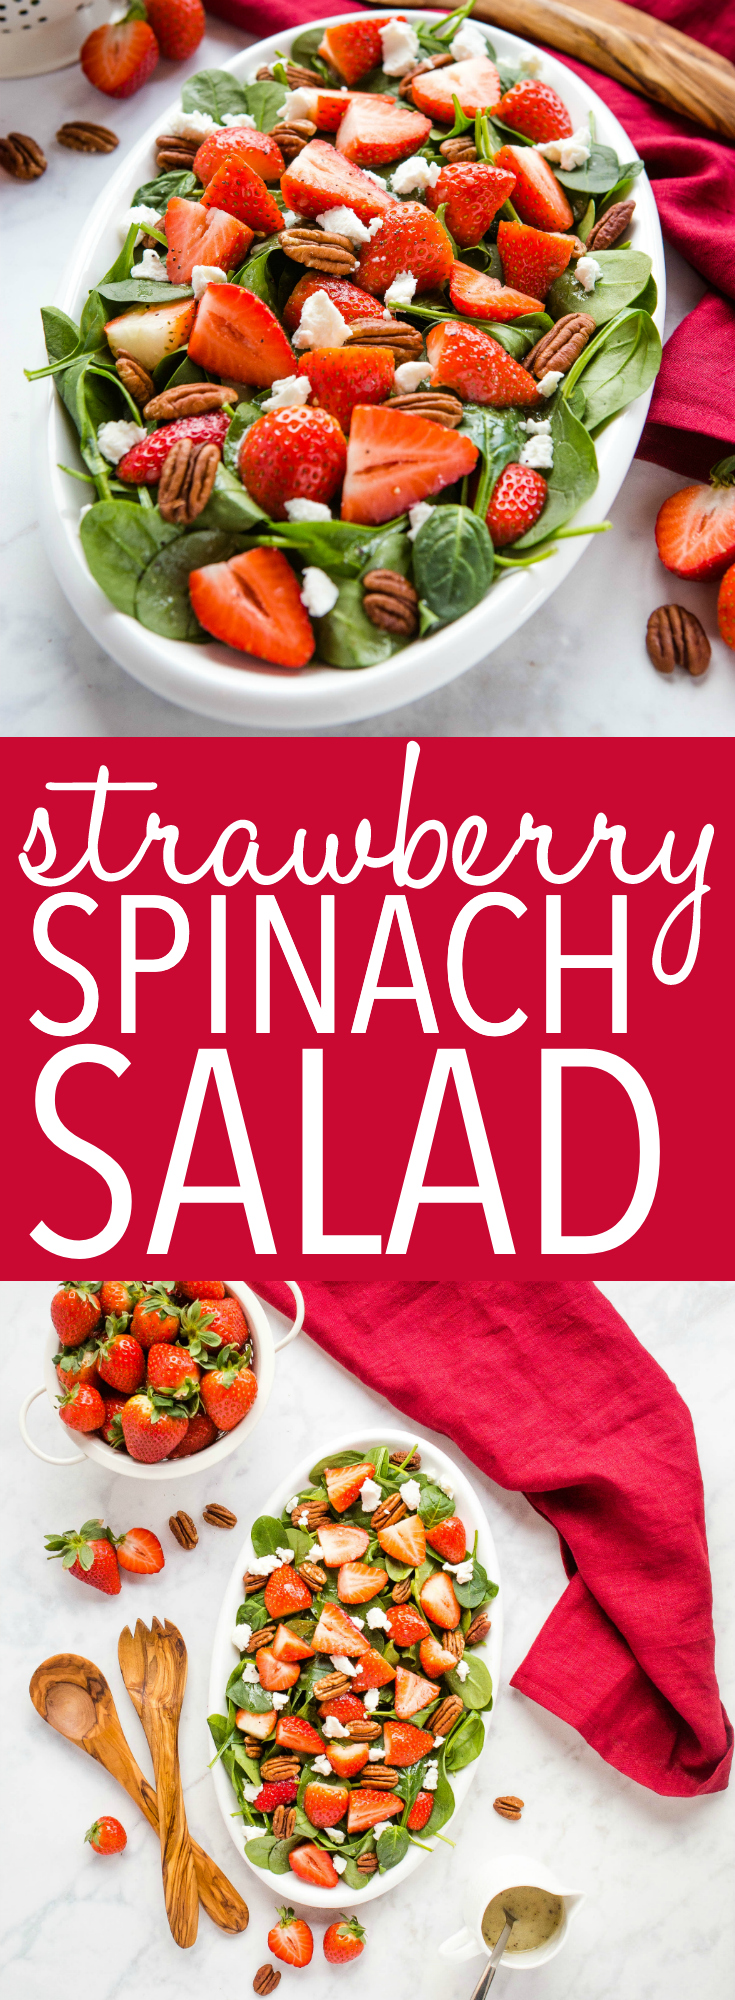 strawberry spinach salad pinterest